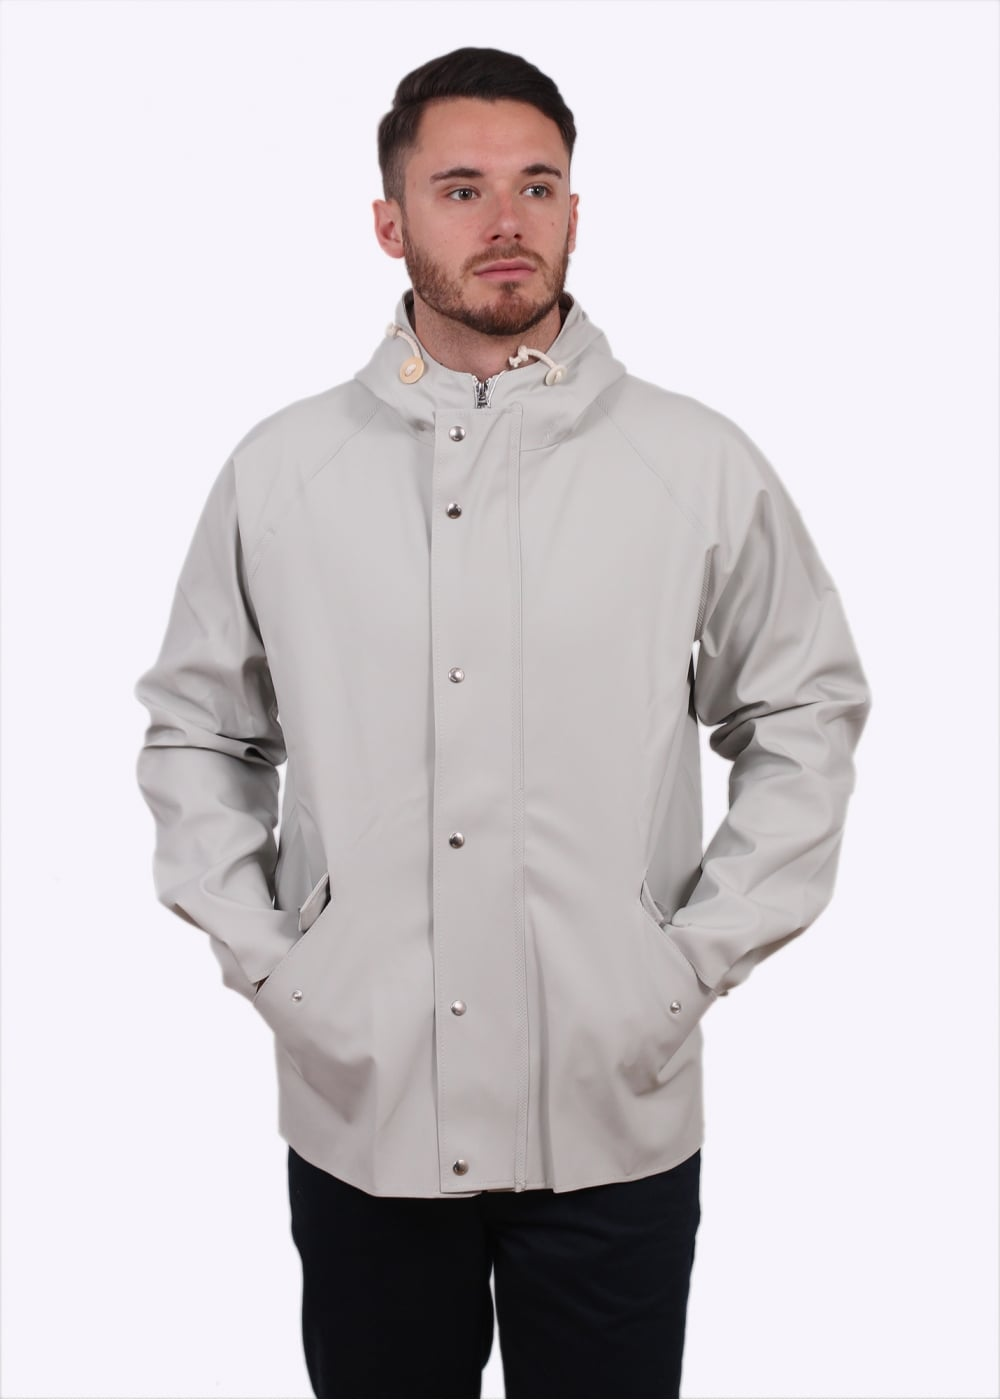 cf65a6943f1 Norse Projects x Elka Anker Classic Jacket - Clay - Jackets from ...